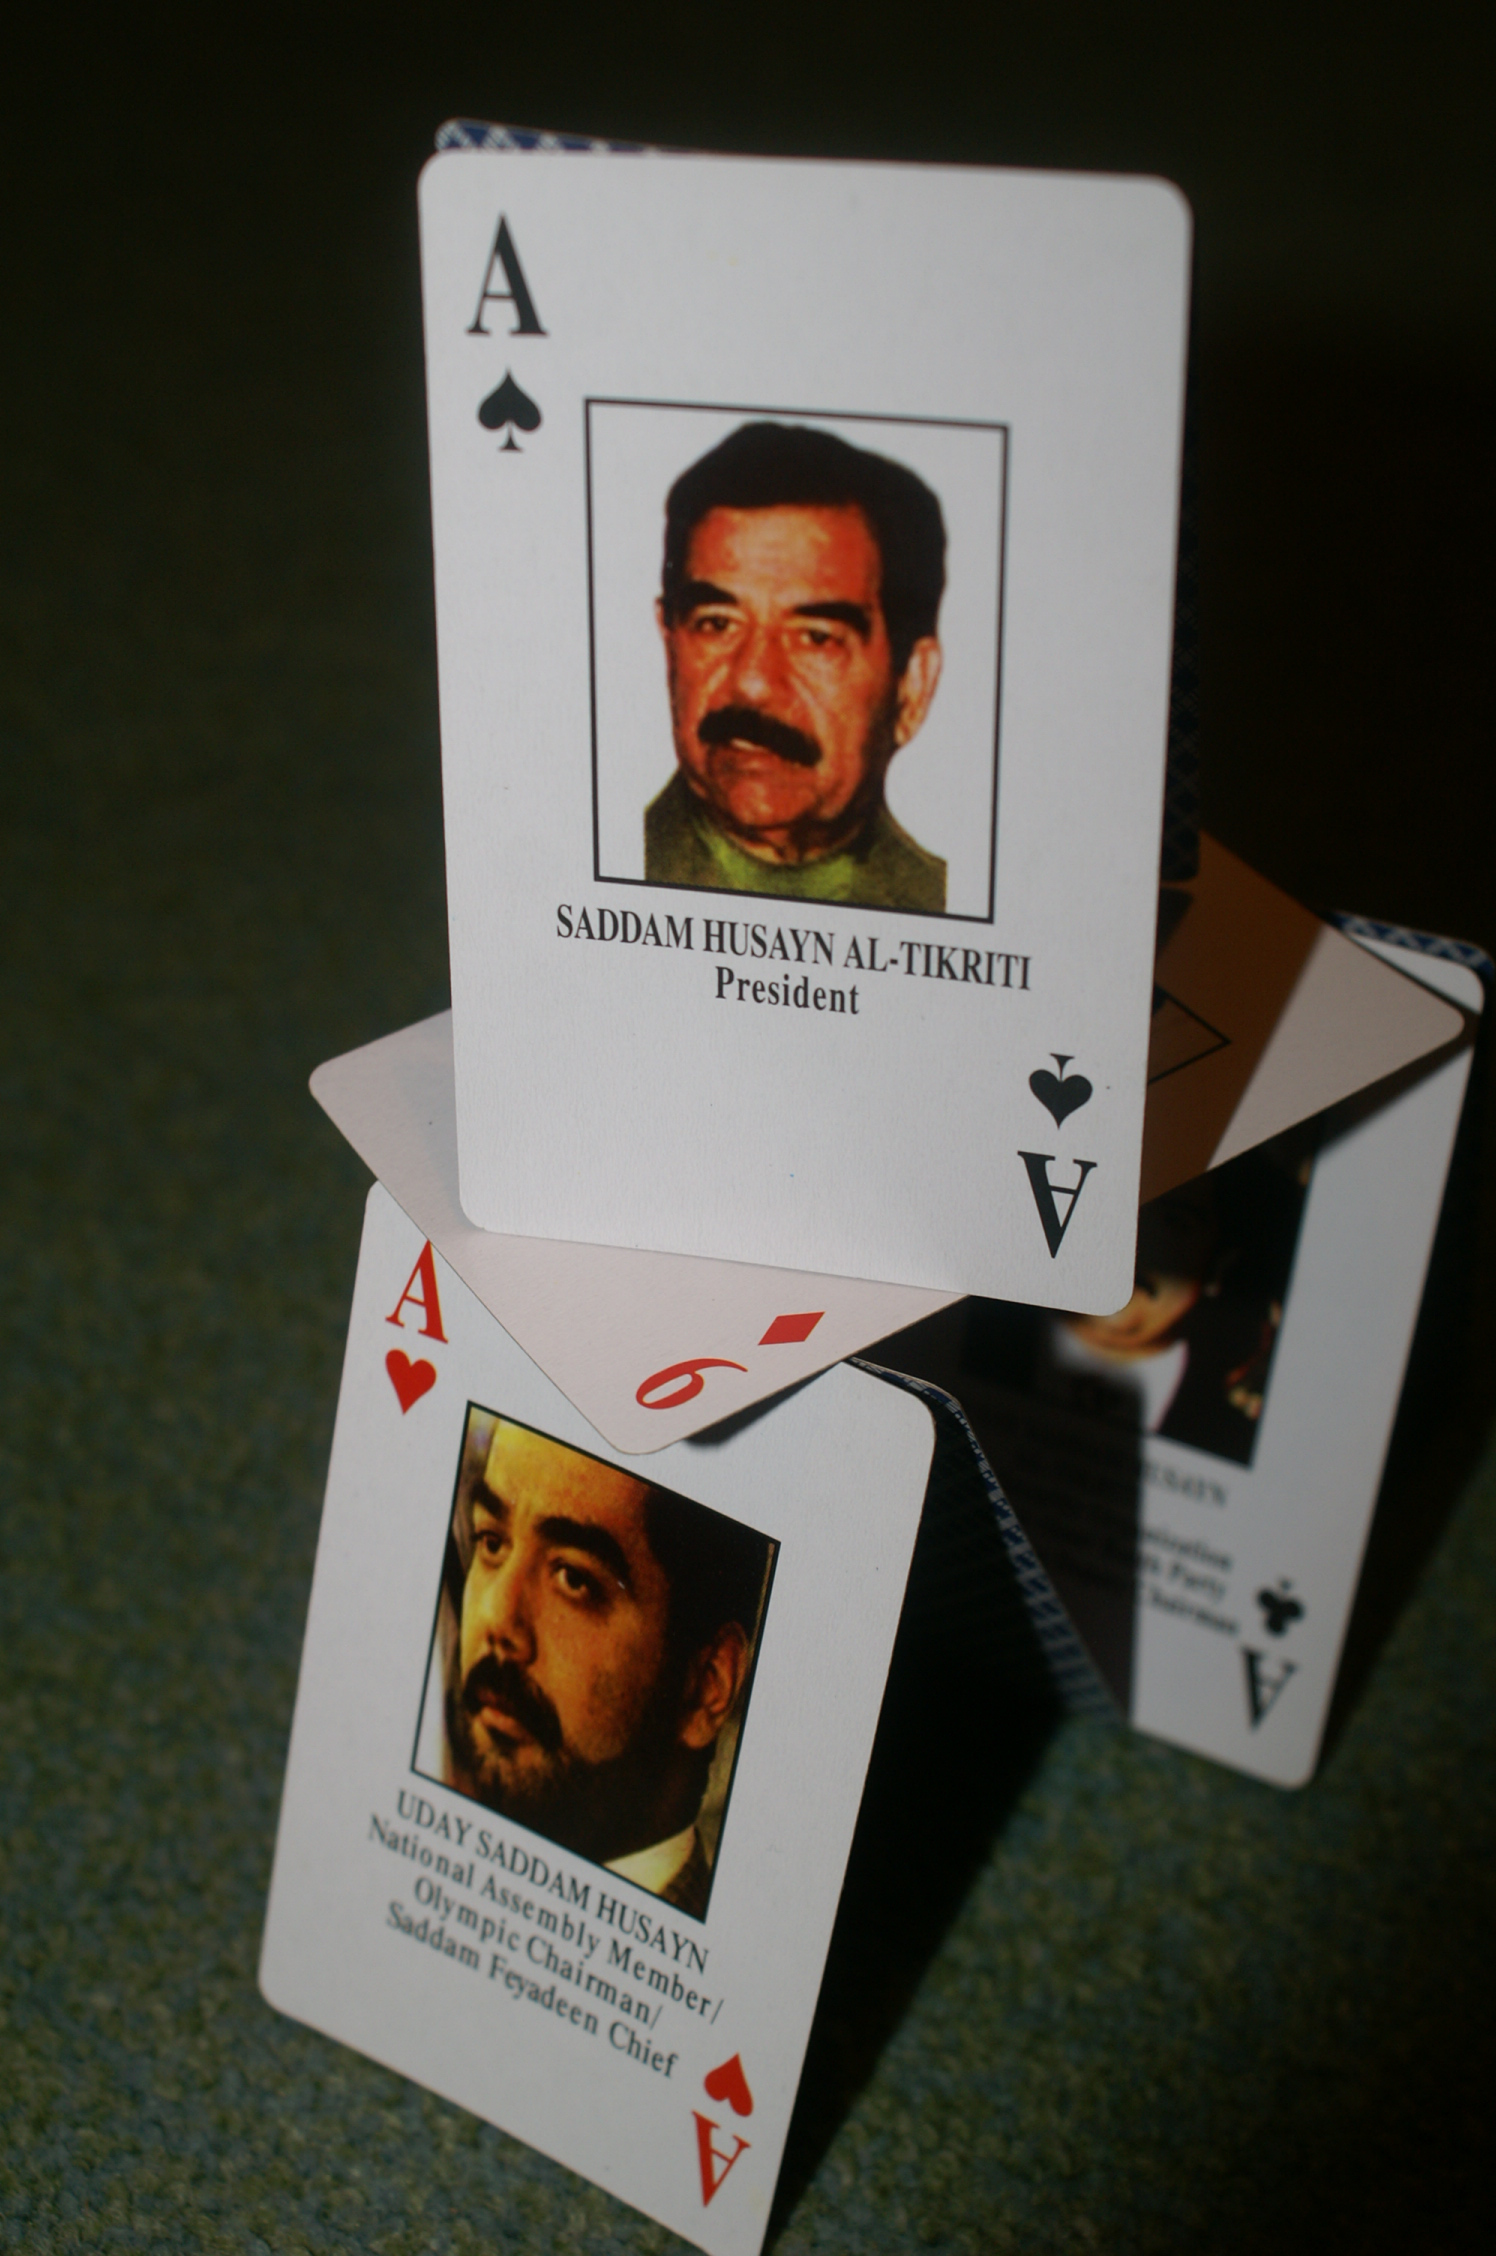 """Most Wanted"" cards. Photocredit: Tim Ellis CC BY-NC."